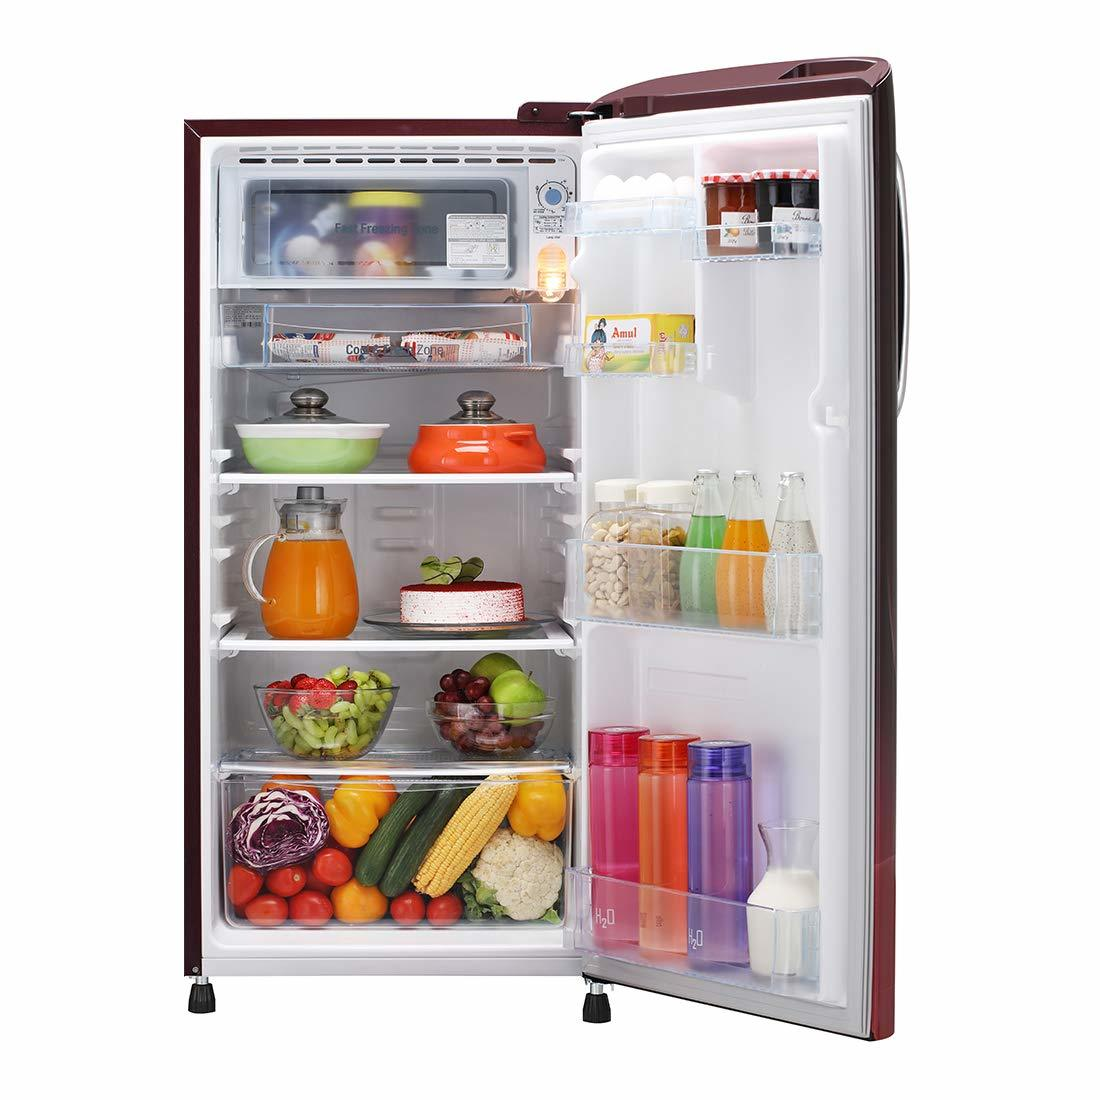 LG 190 L 5 Star ( 2019 ) Inverter Direct-Cool Single Door Refrigerator (GL-B201ASPY, Scarlet Plumeria)